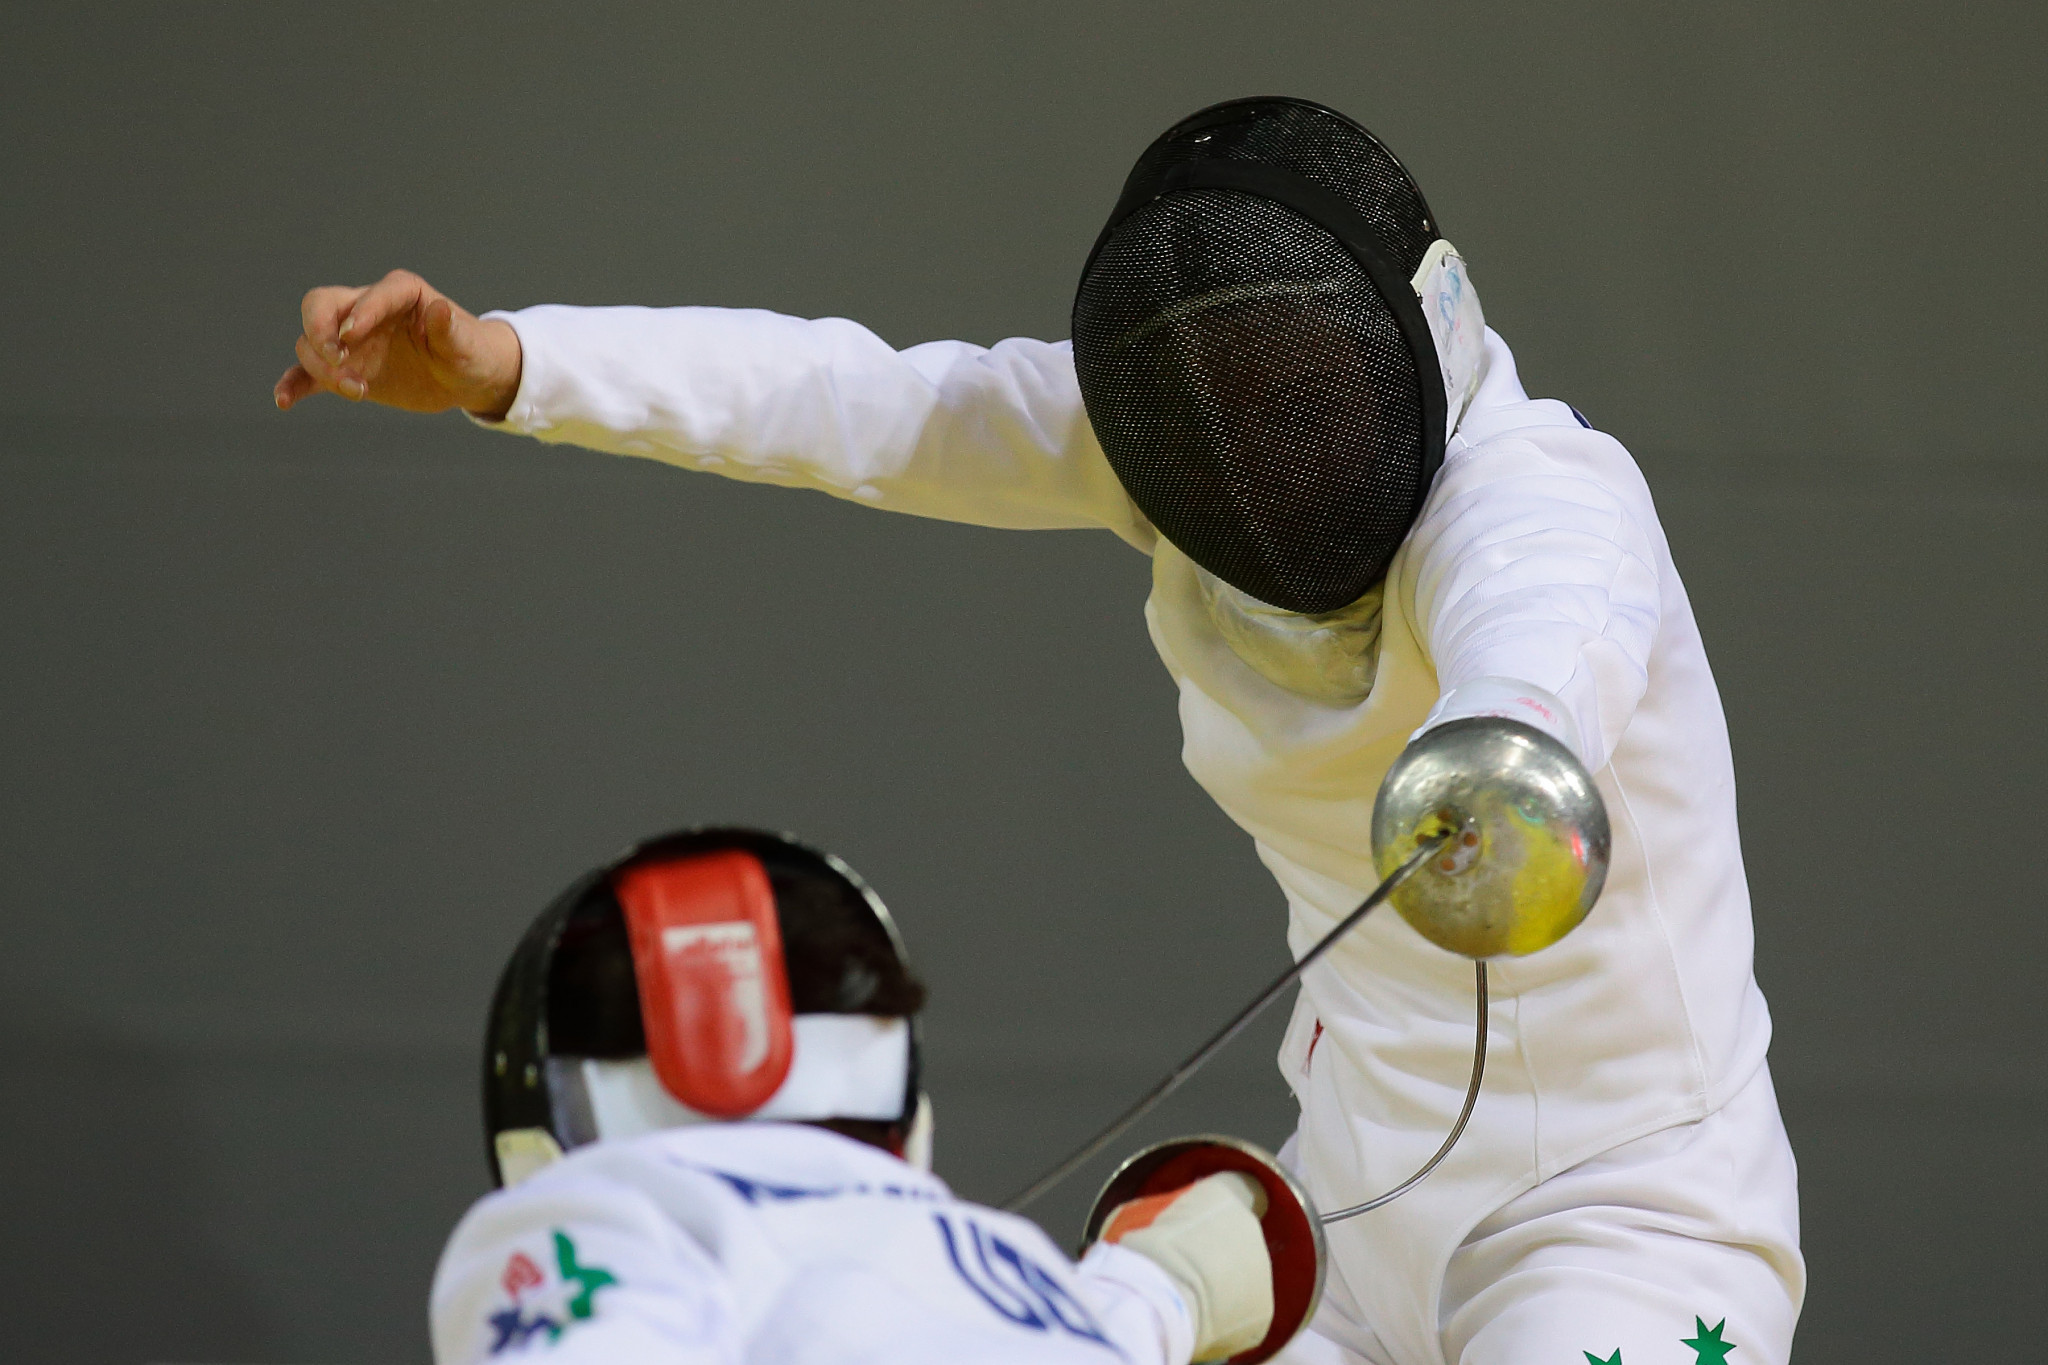 """Decision to allow Oceania athletes to compete in Asian Games called """"game changer"""" by Australian fencer"""